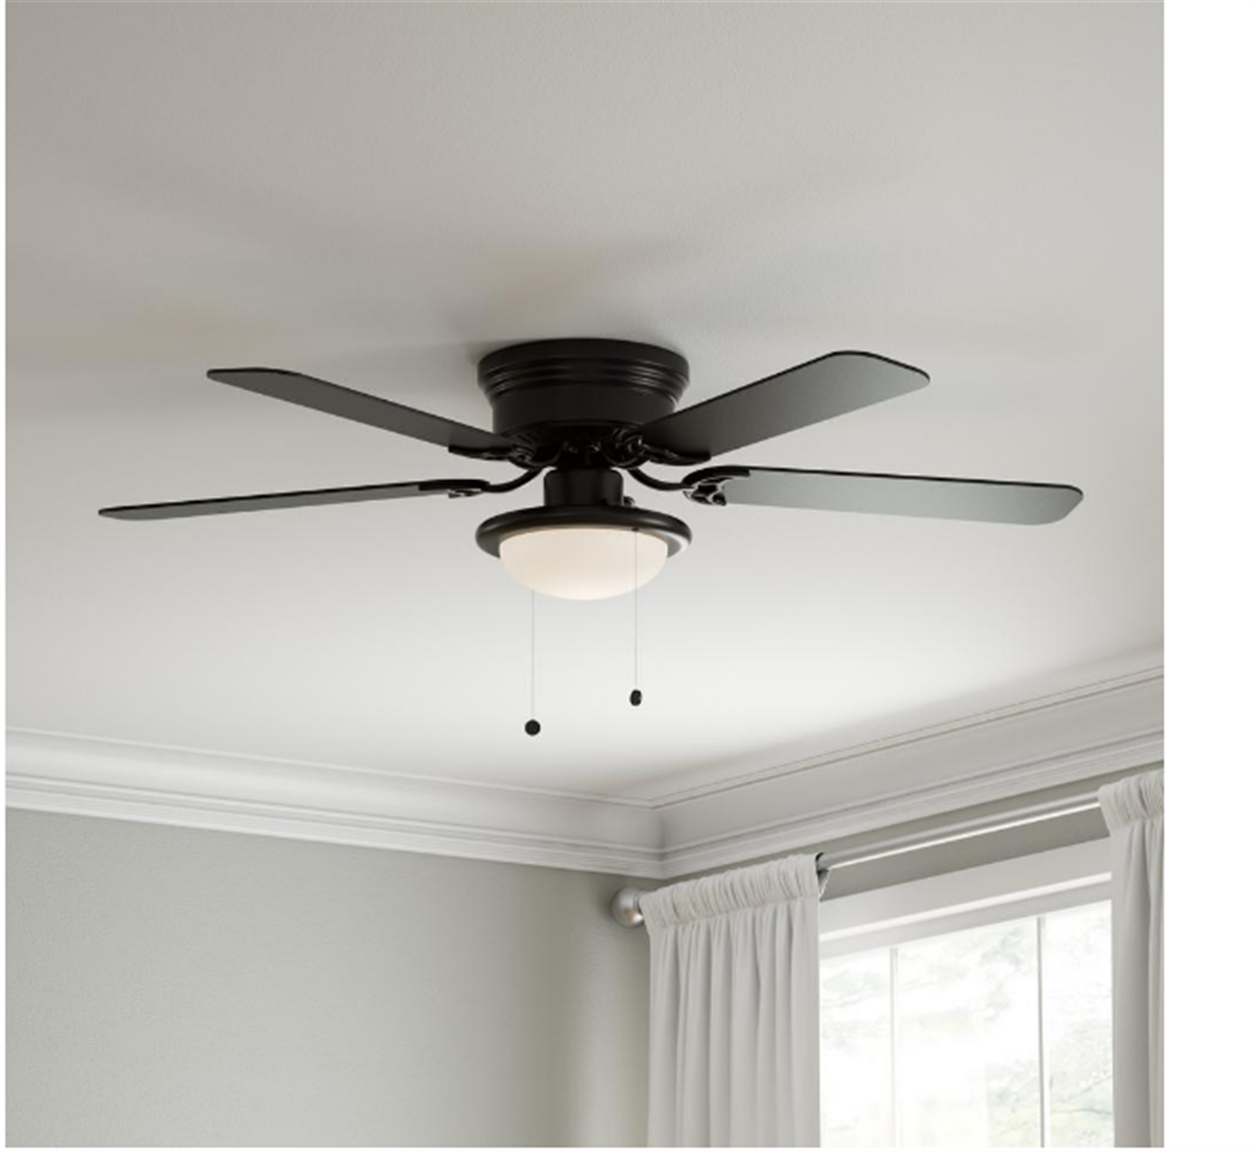 HomeDepot.com – Up To 40% Off Select Ceiling Fans + FS (Today Only) Hugger 52 in. LED Indoor Black Ceiling Fan with Light Kit Only $39.97, Reg $54.97!